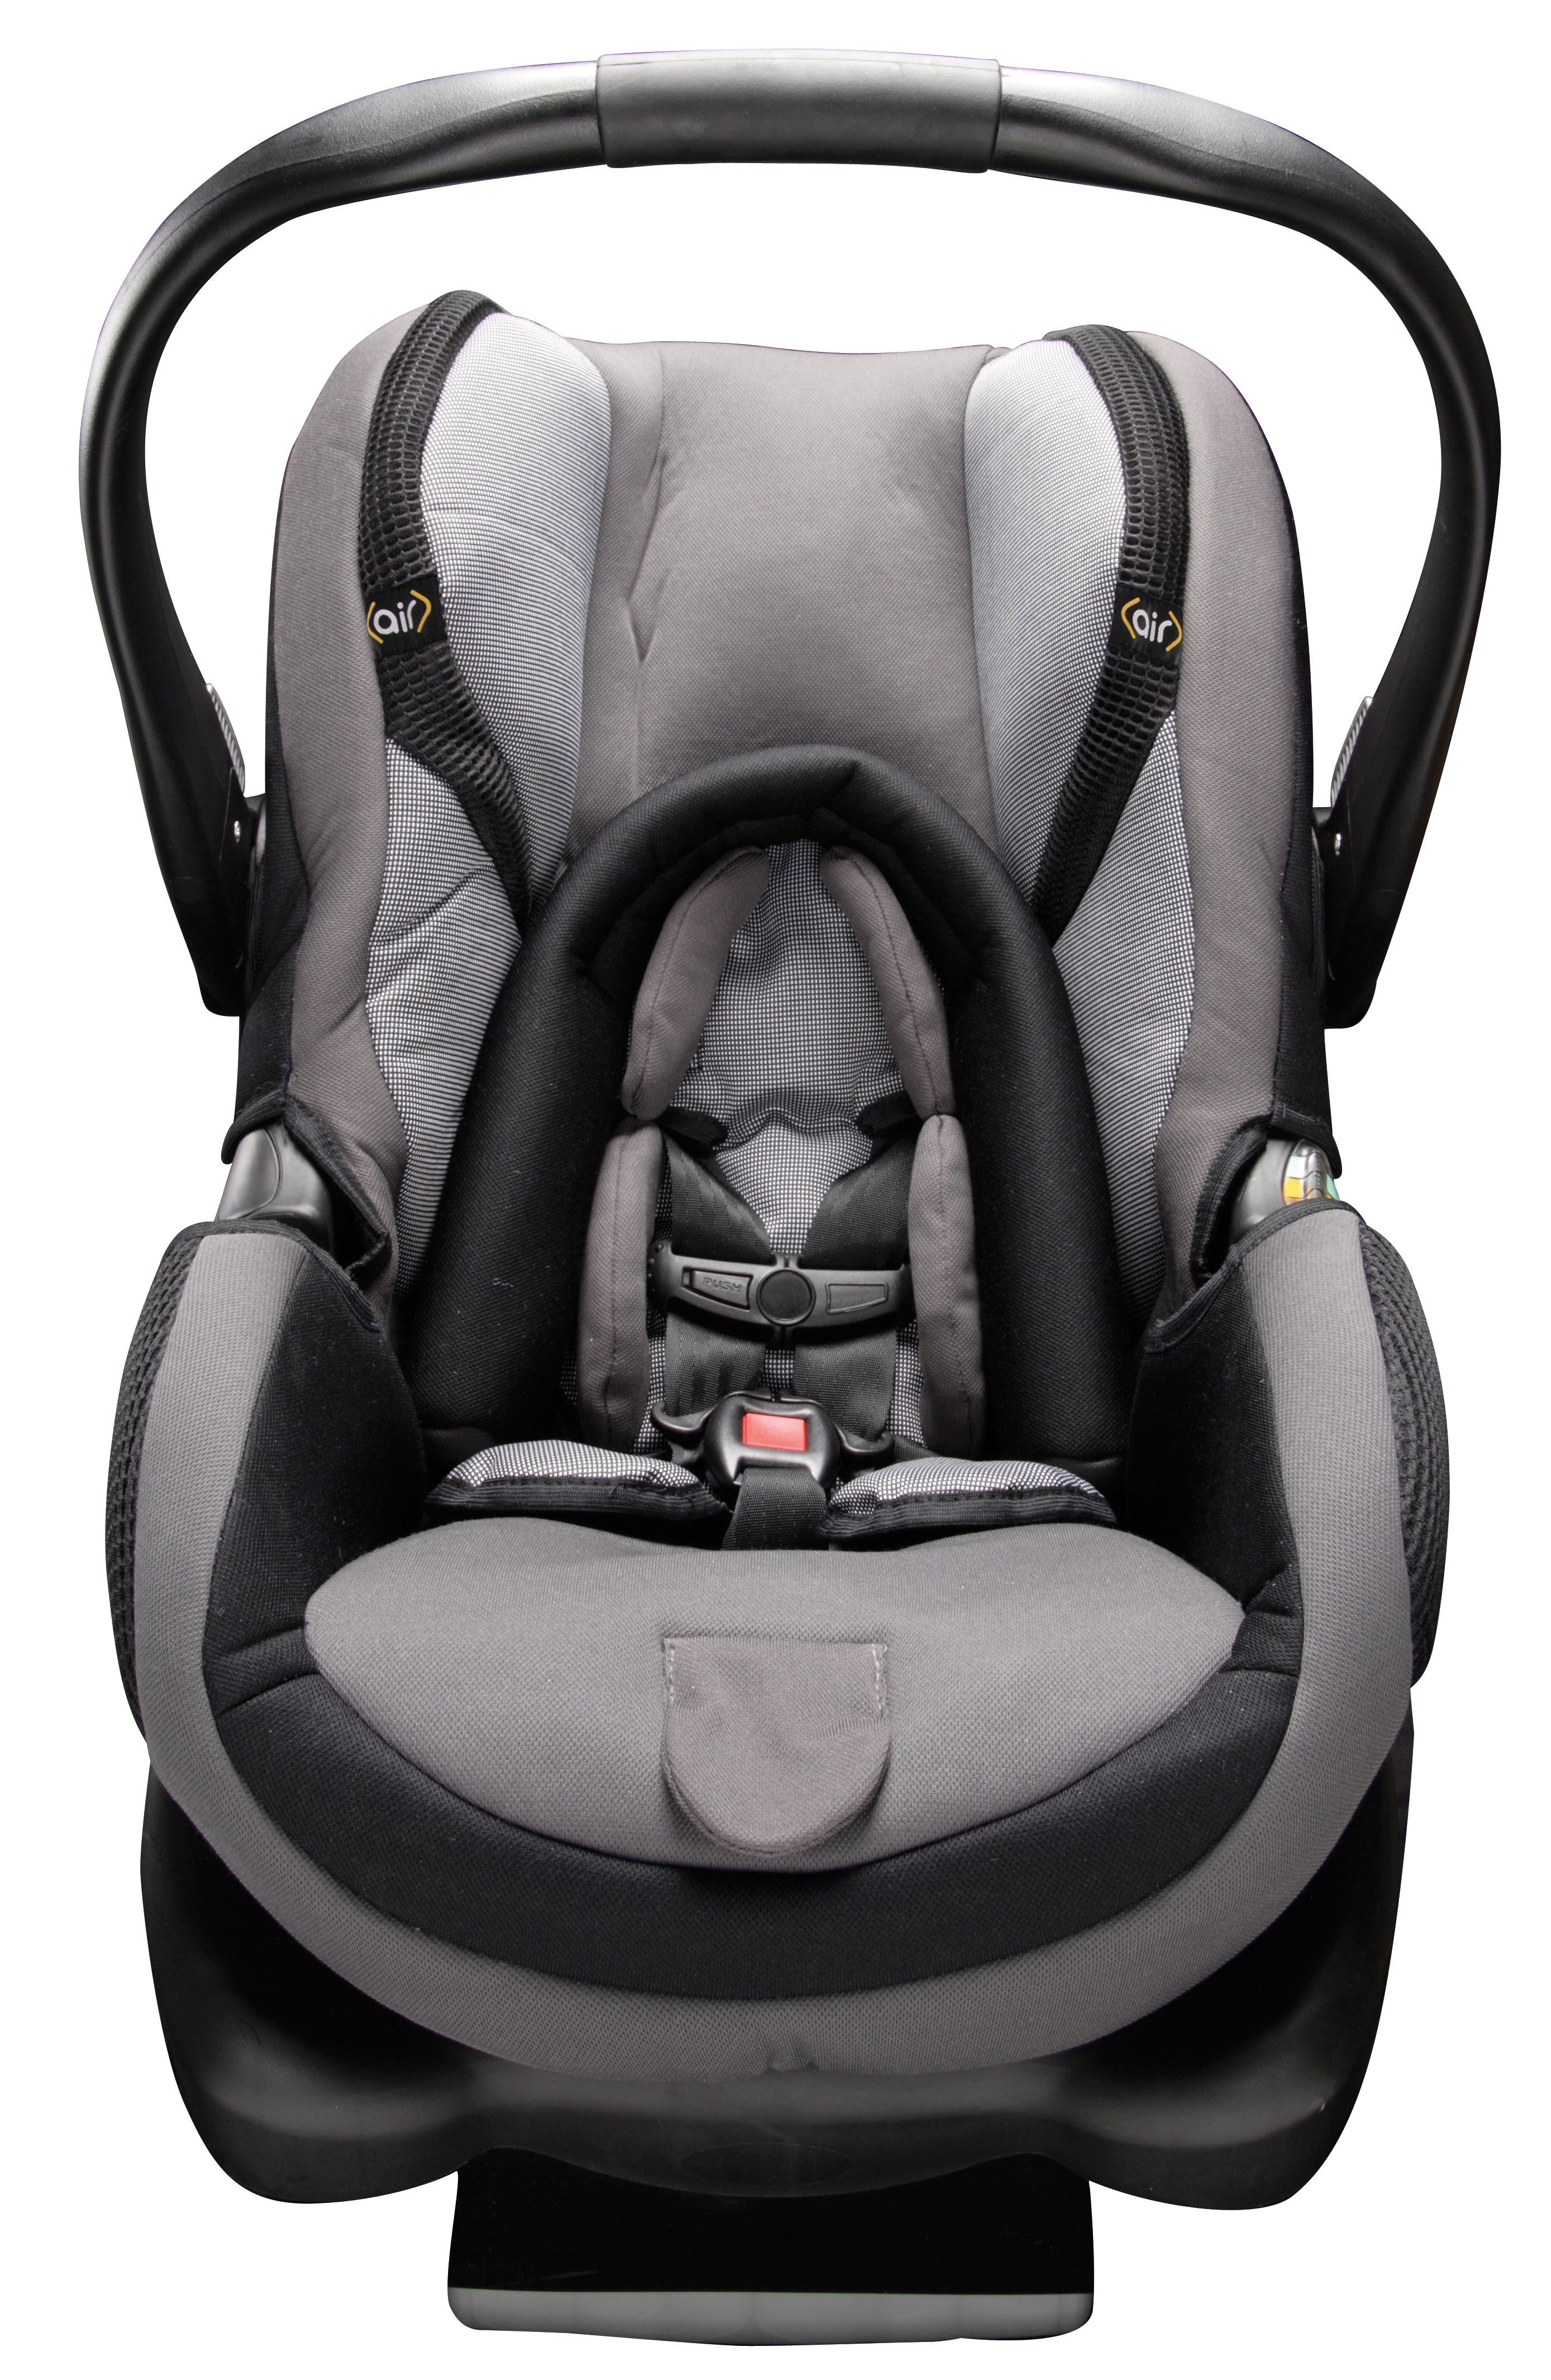 choose a baby car seat - reviewsletter.net - All You Wanna Know